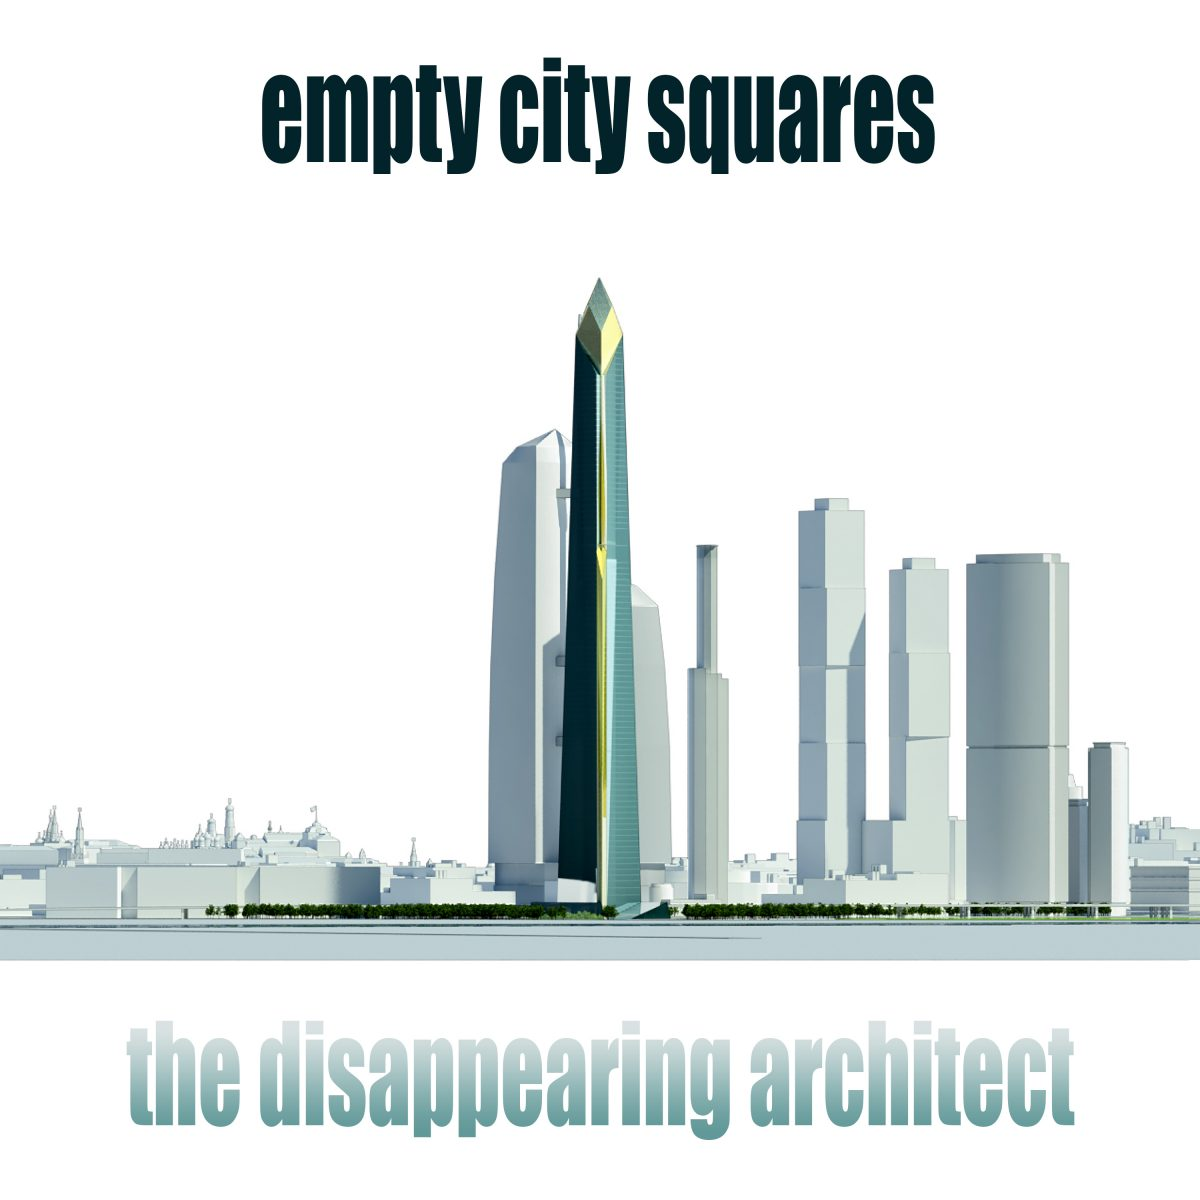 THE DISAPPEARING ARCHITECT